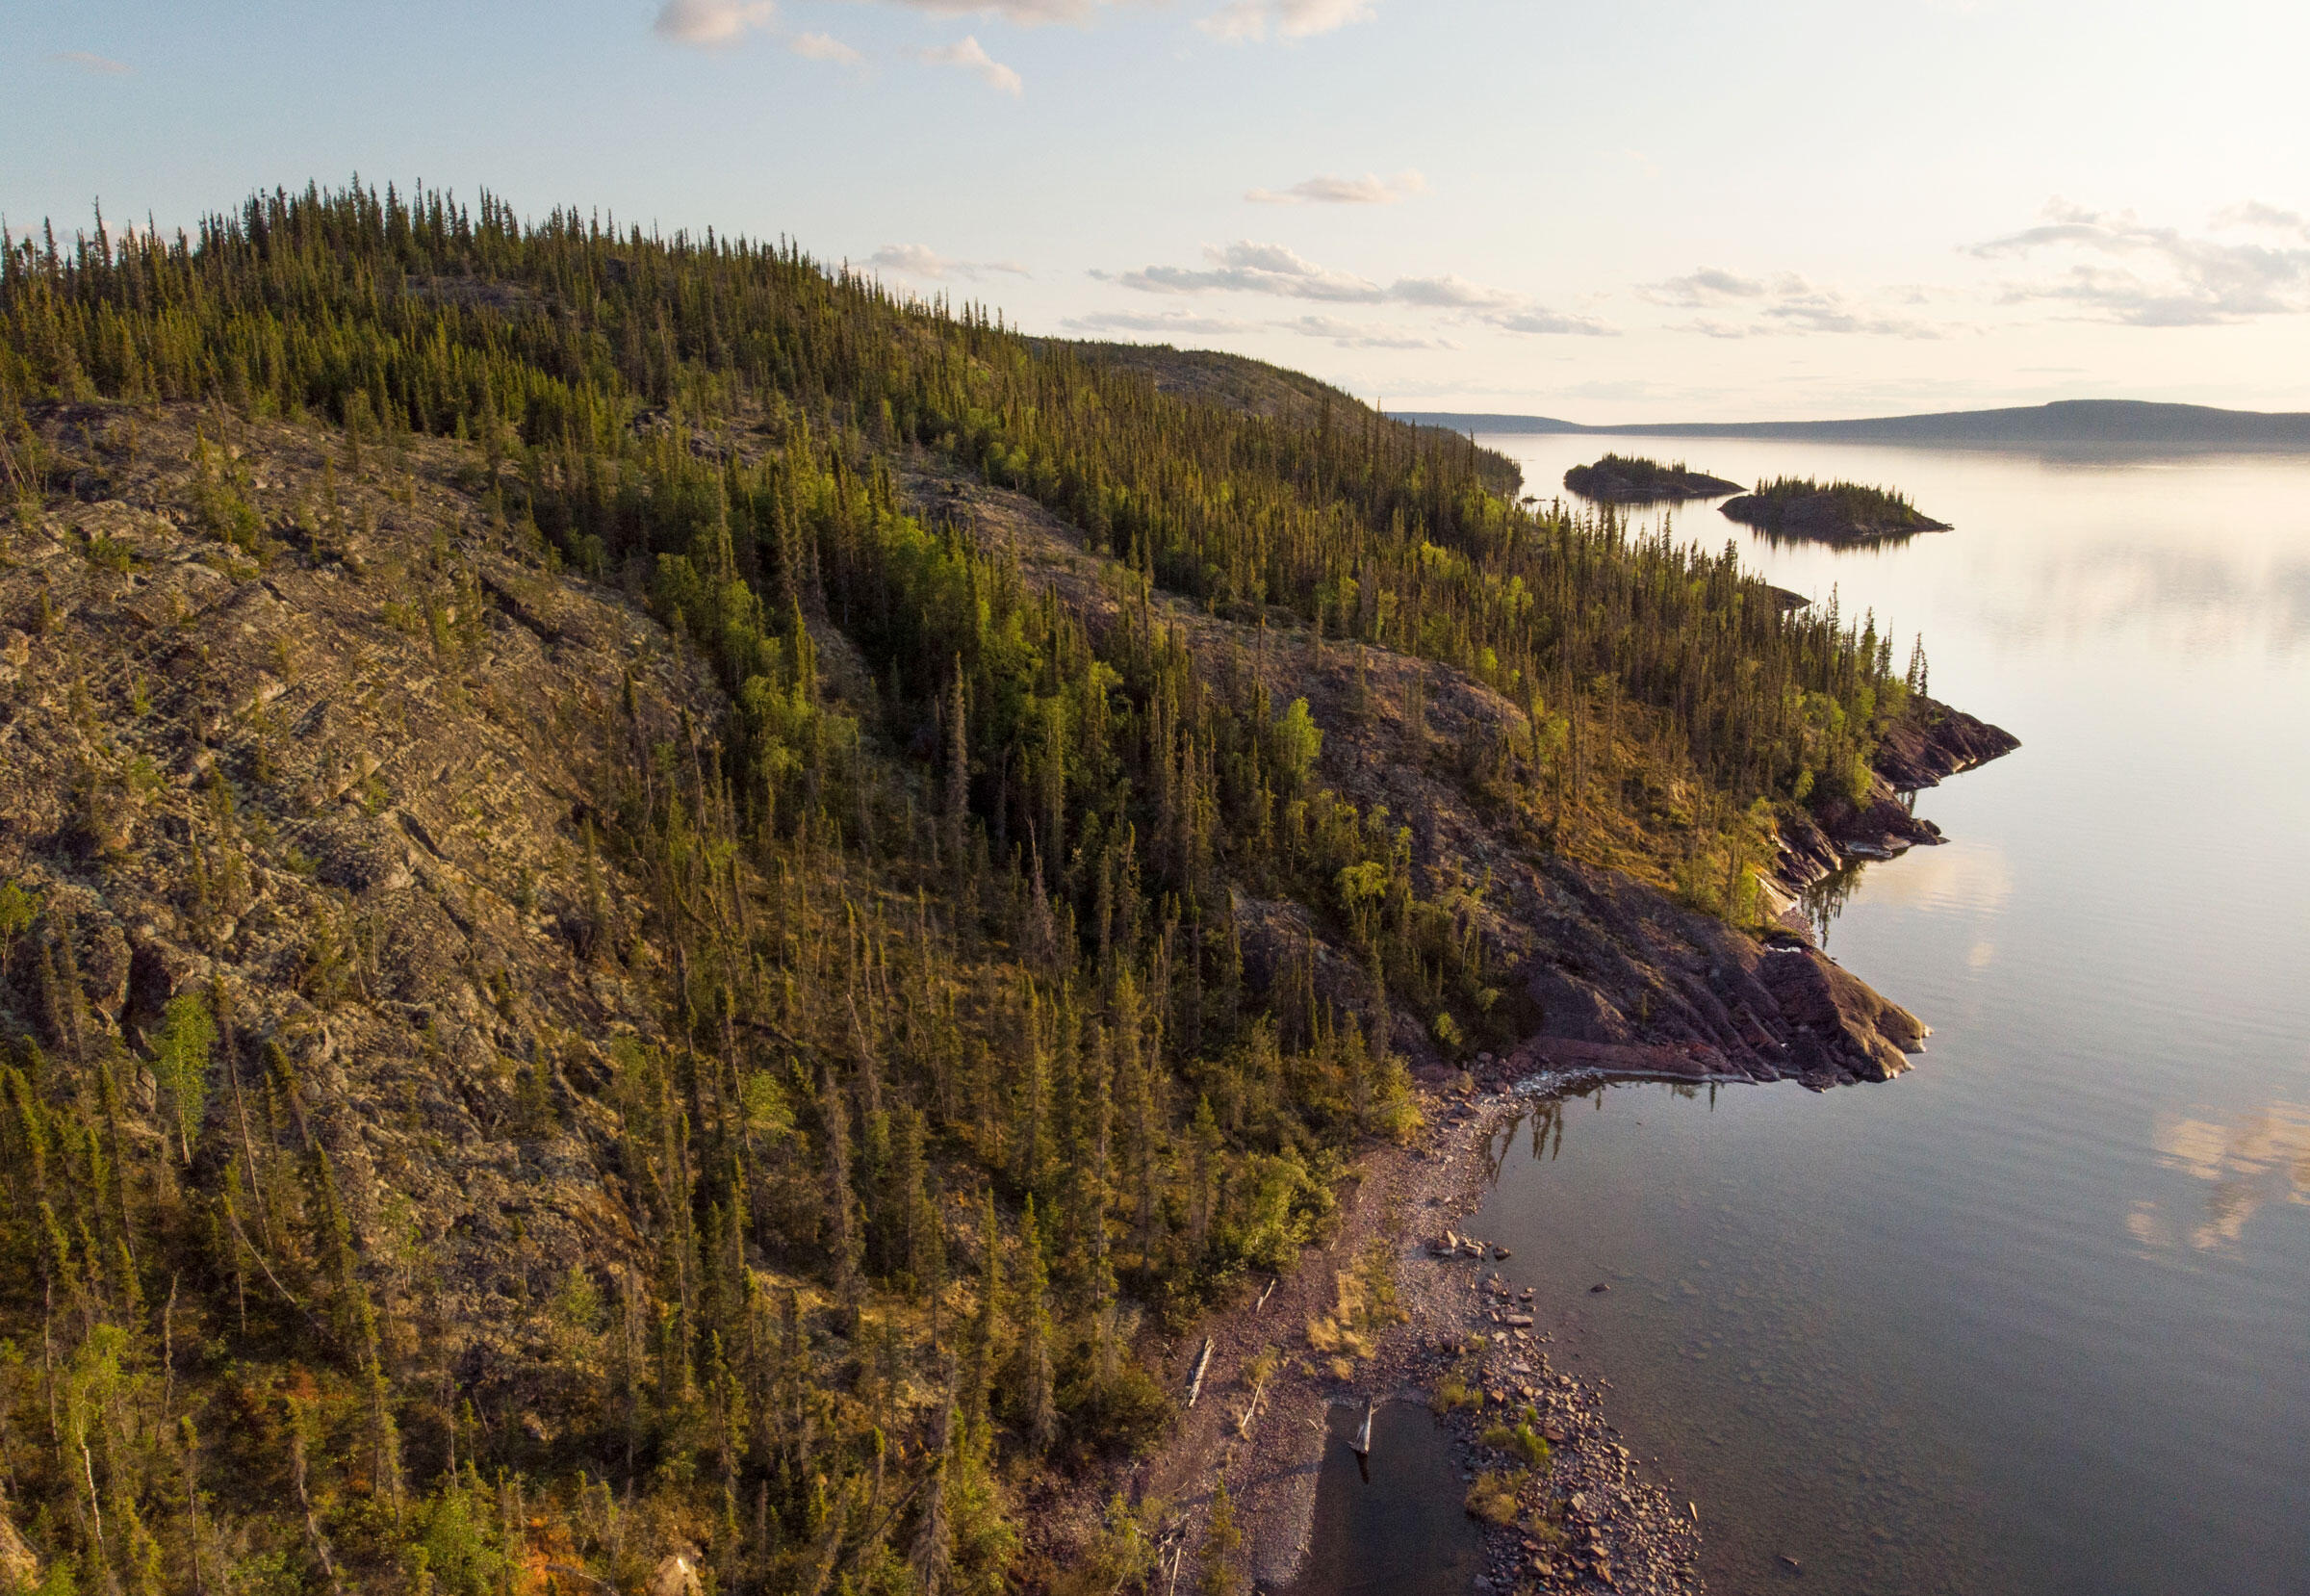 The new protected area straddles Canada's tree line, where boreal forest transitions to heath-dominated tundra—an important area for wildlife migration as the climate warms. Pat Kane